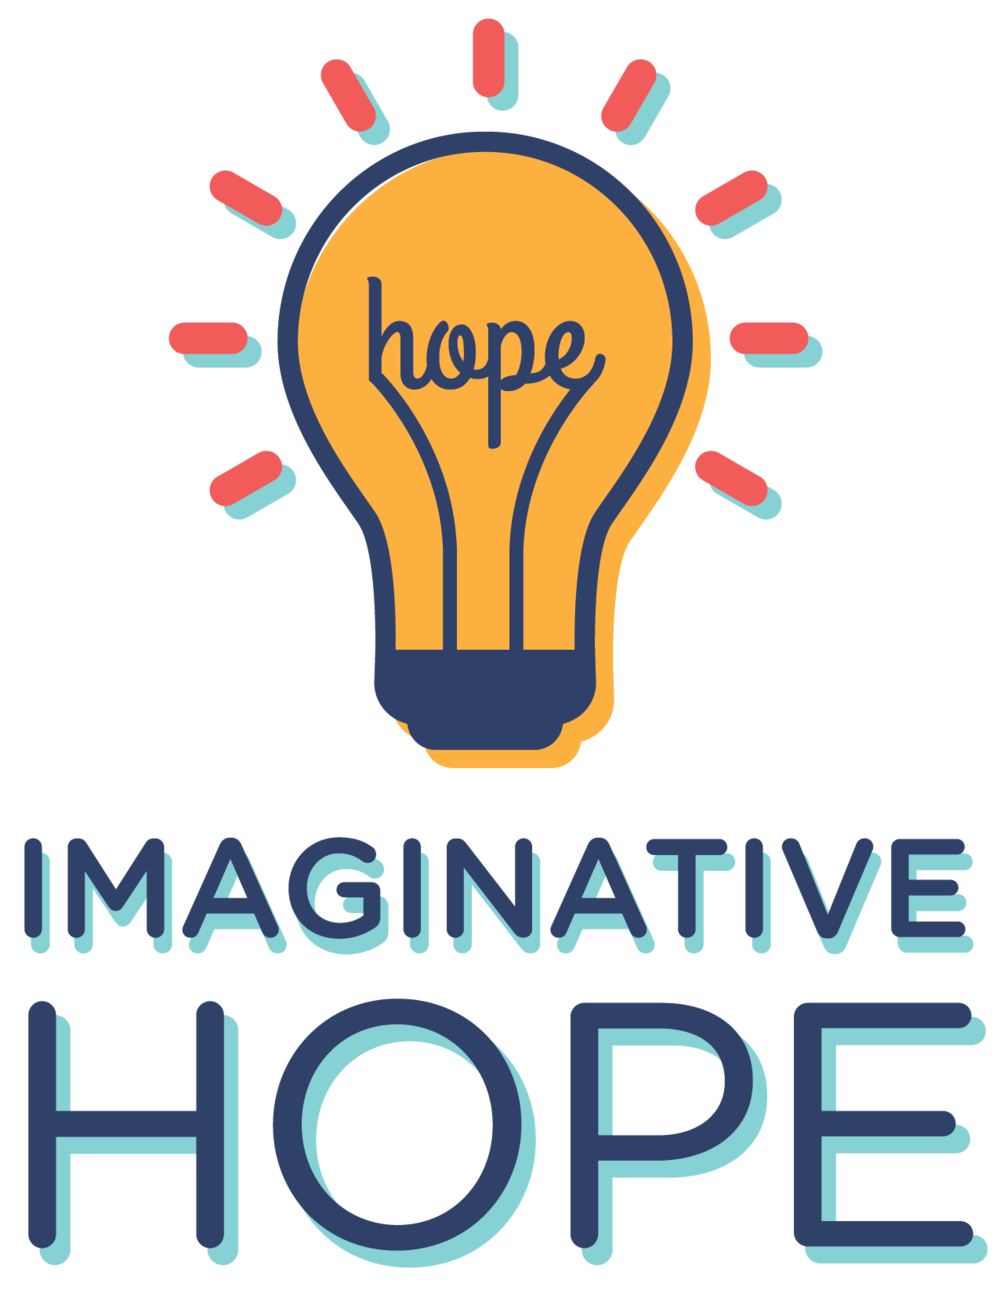 Imaginative Hope logo